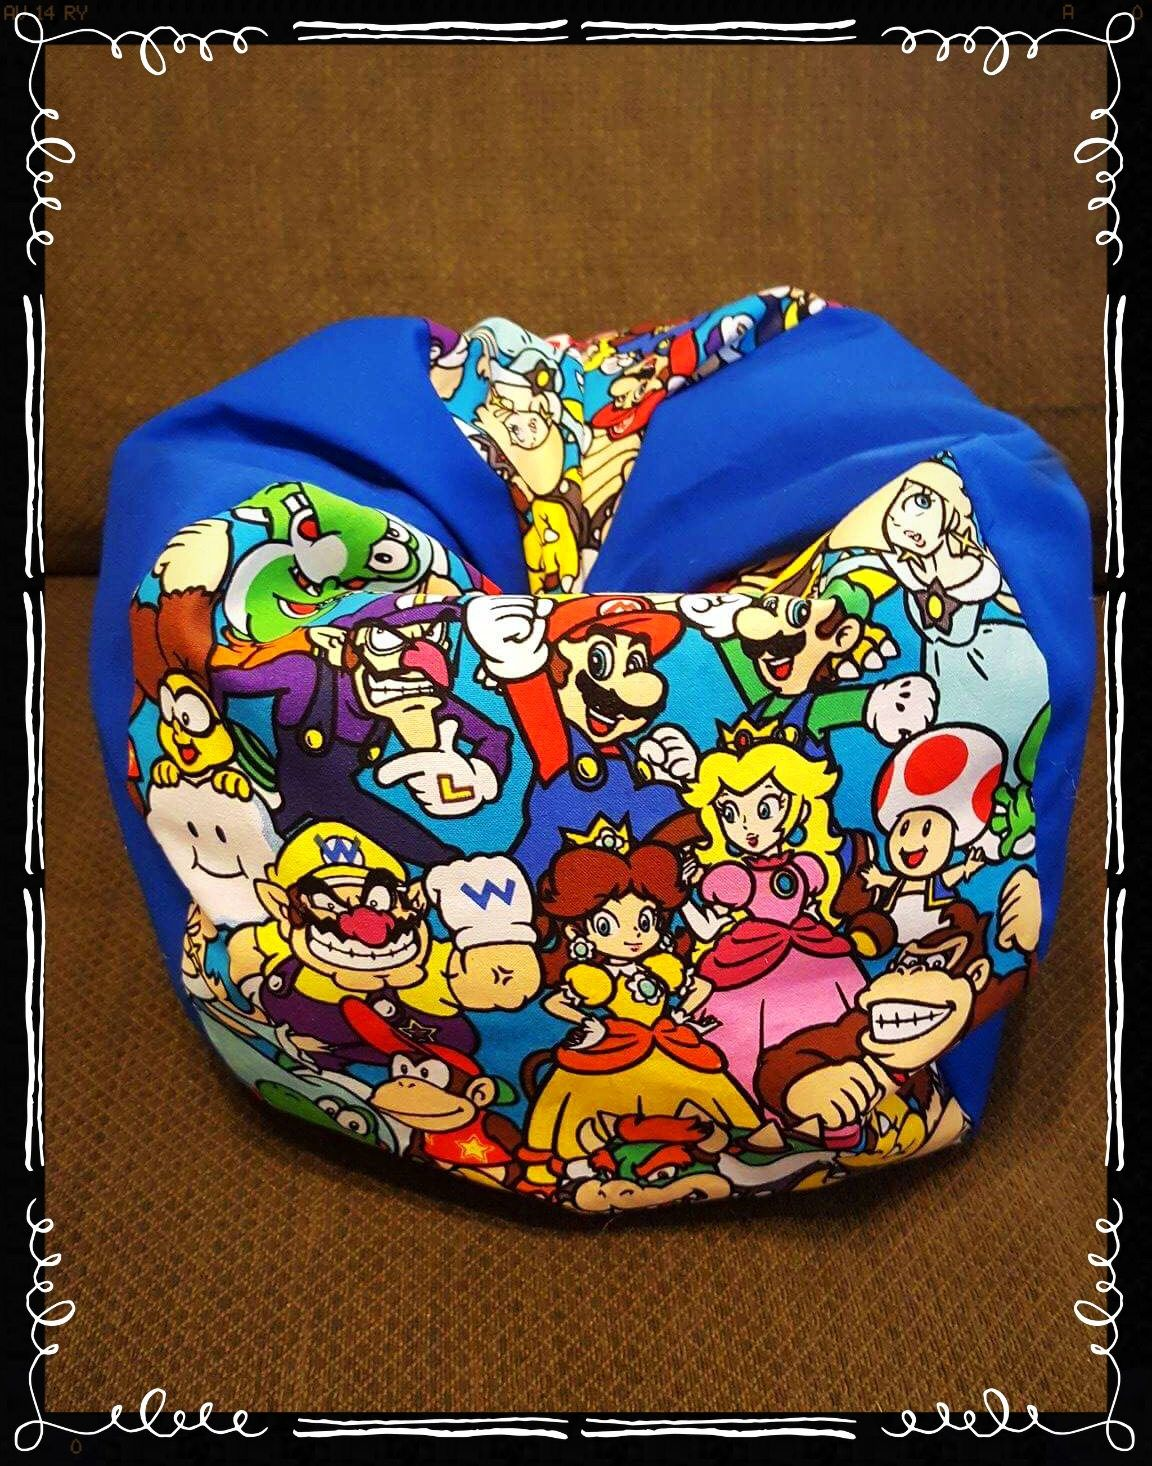 Handmade Super Mario Bros Nintendo American Girl Bean Bag Chair For American Girl Dolls Or Other 18  Dolls! by LilAngelKissesCrafts on Etsy  sc 1 st  Pinterest & Handmade Super Mario Bros Nintendo American Girl Bean Bag Chair For ...